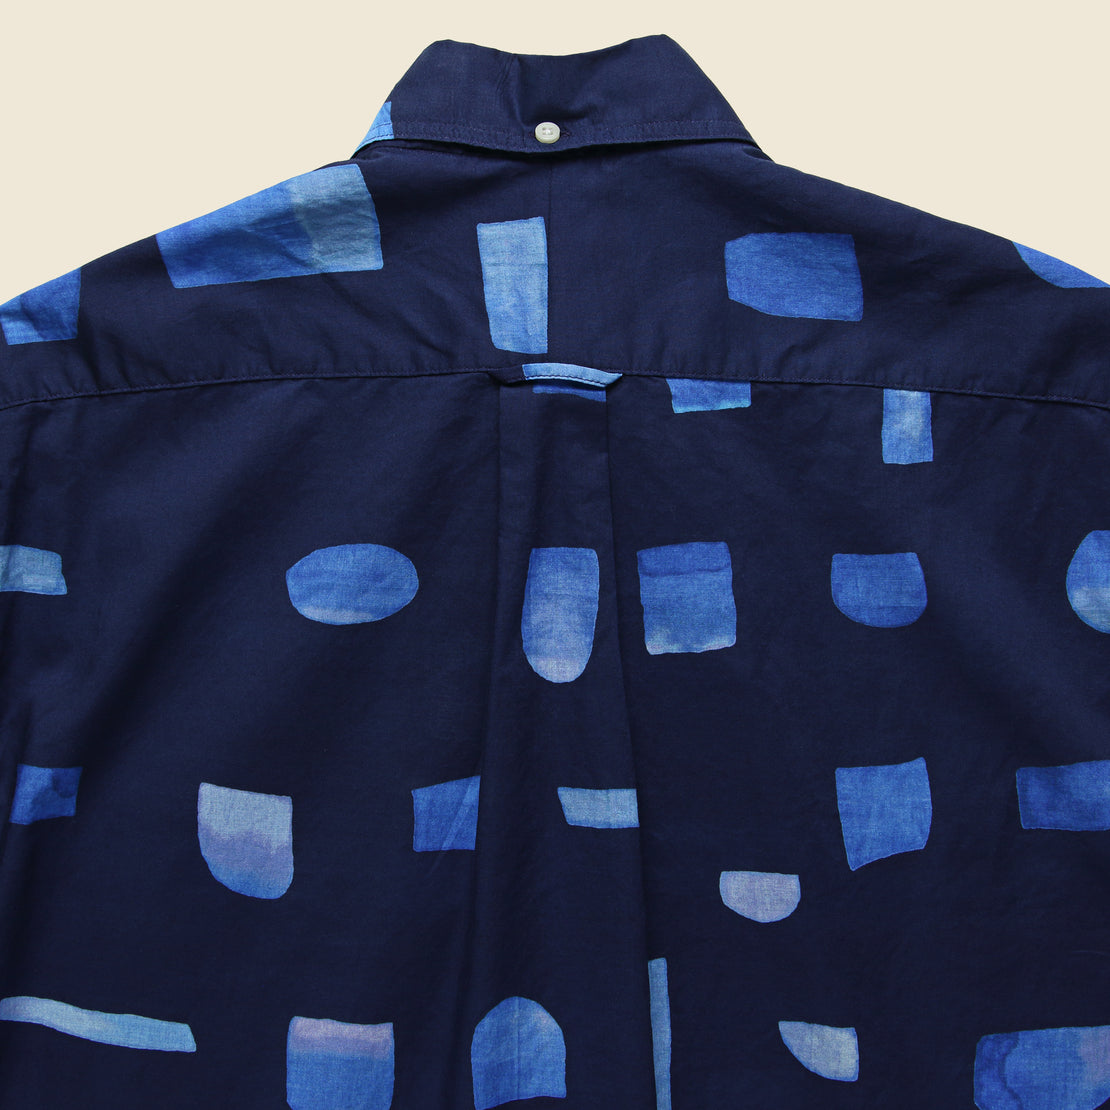 Abstract Blues Shirt - Navy/Blue